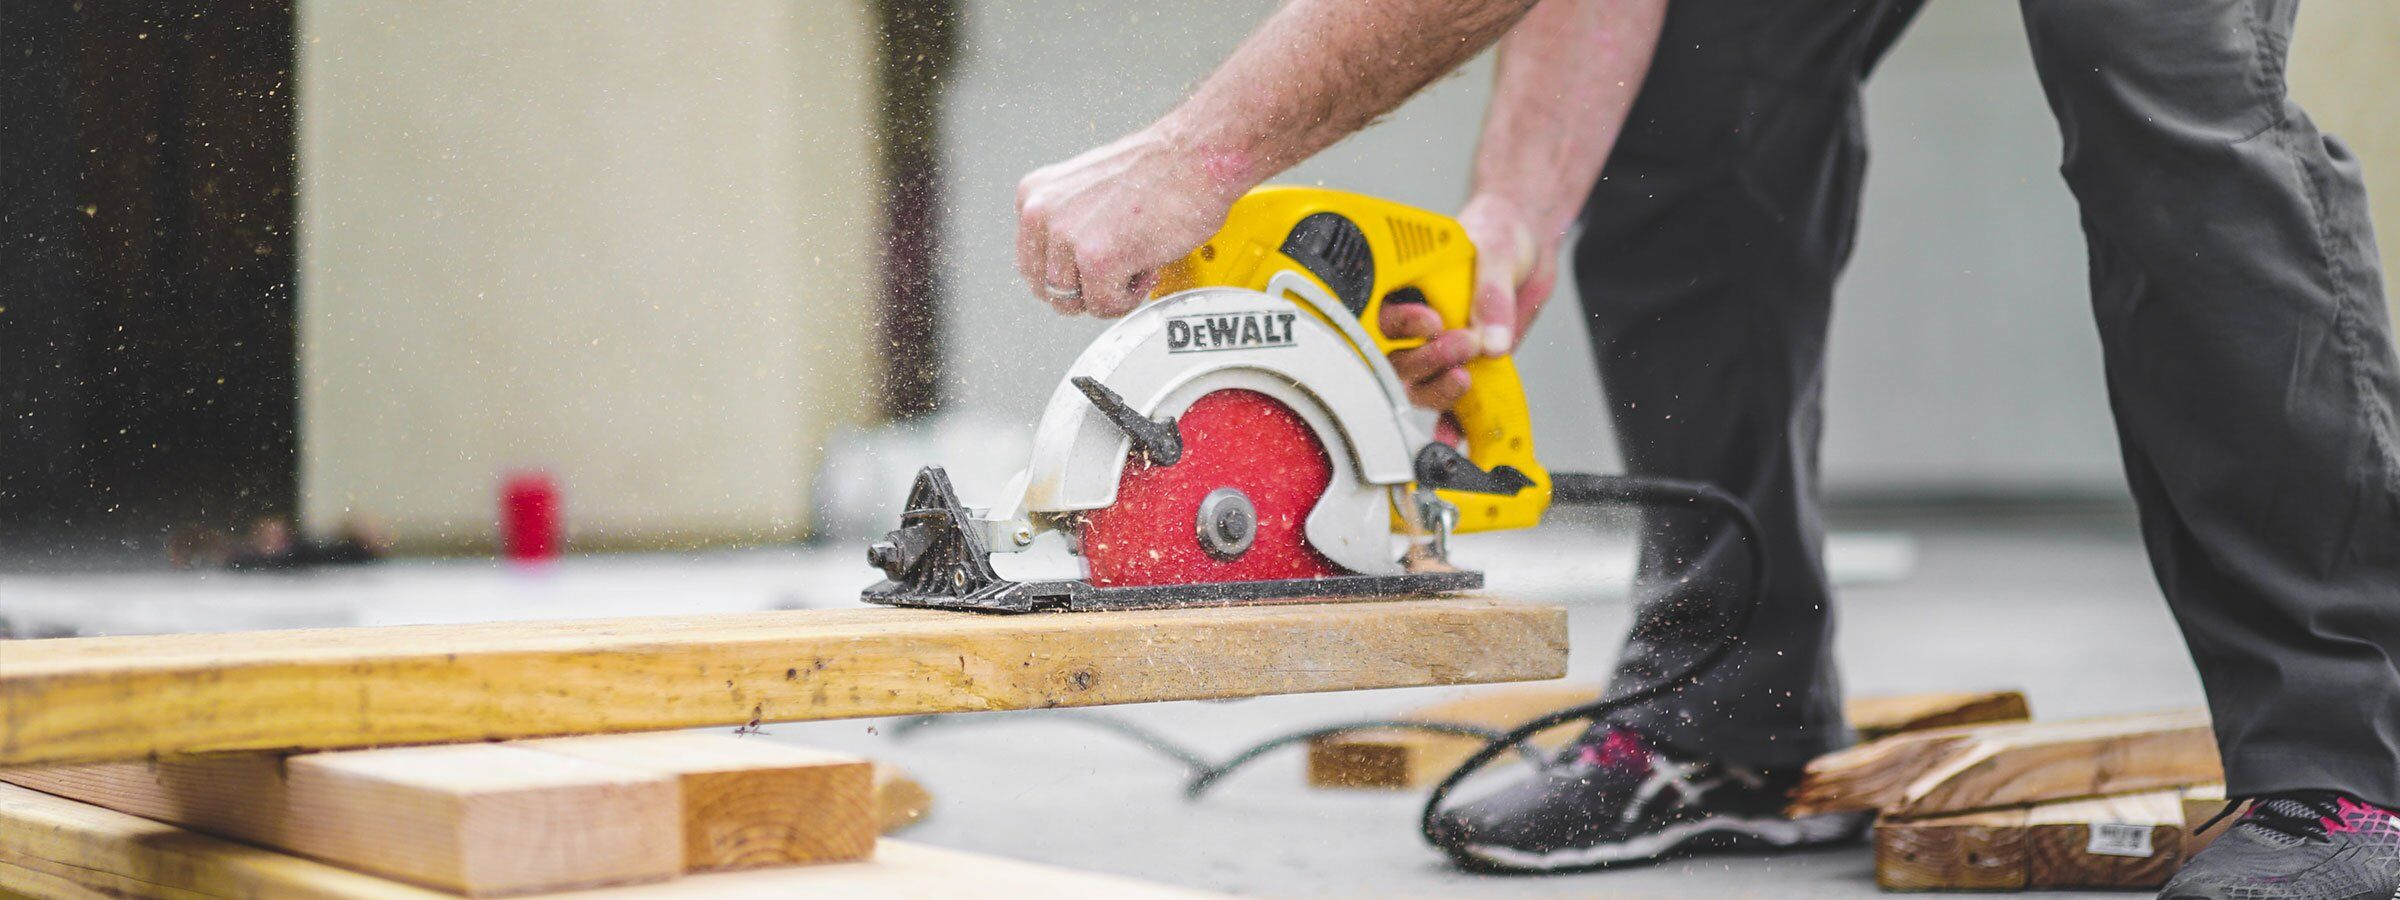 dangerous unsafe conditions in the workplace